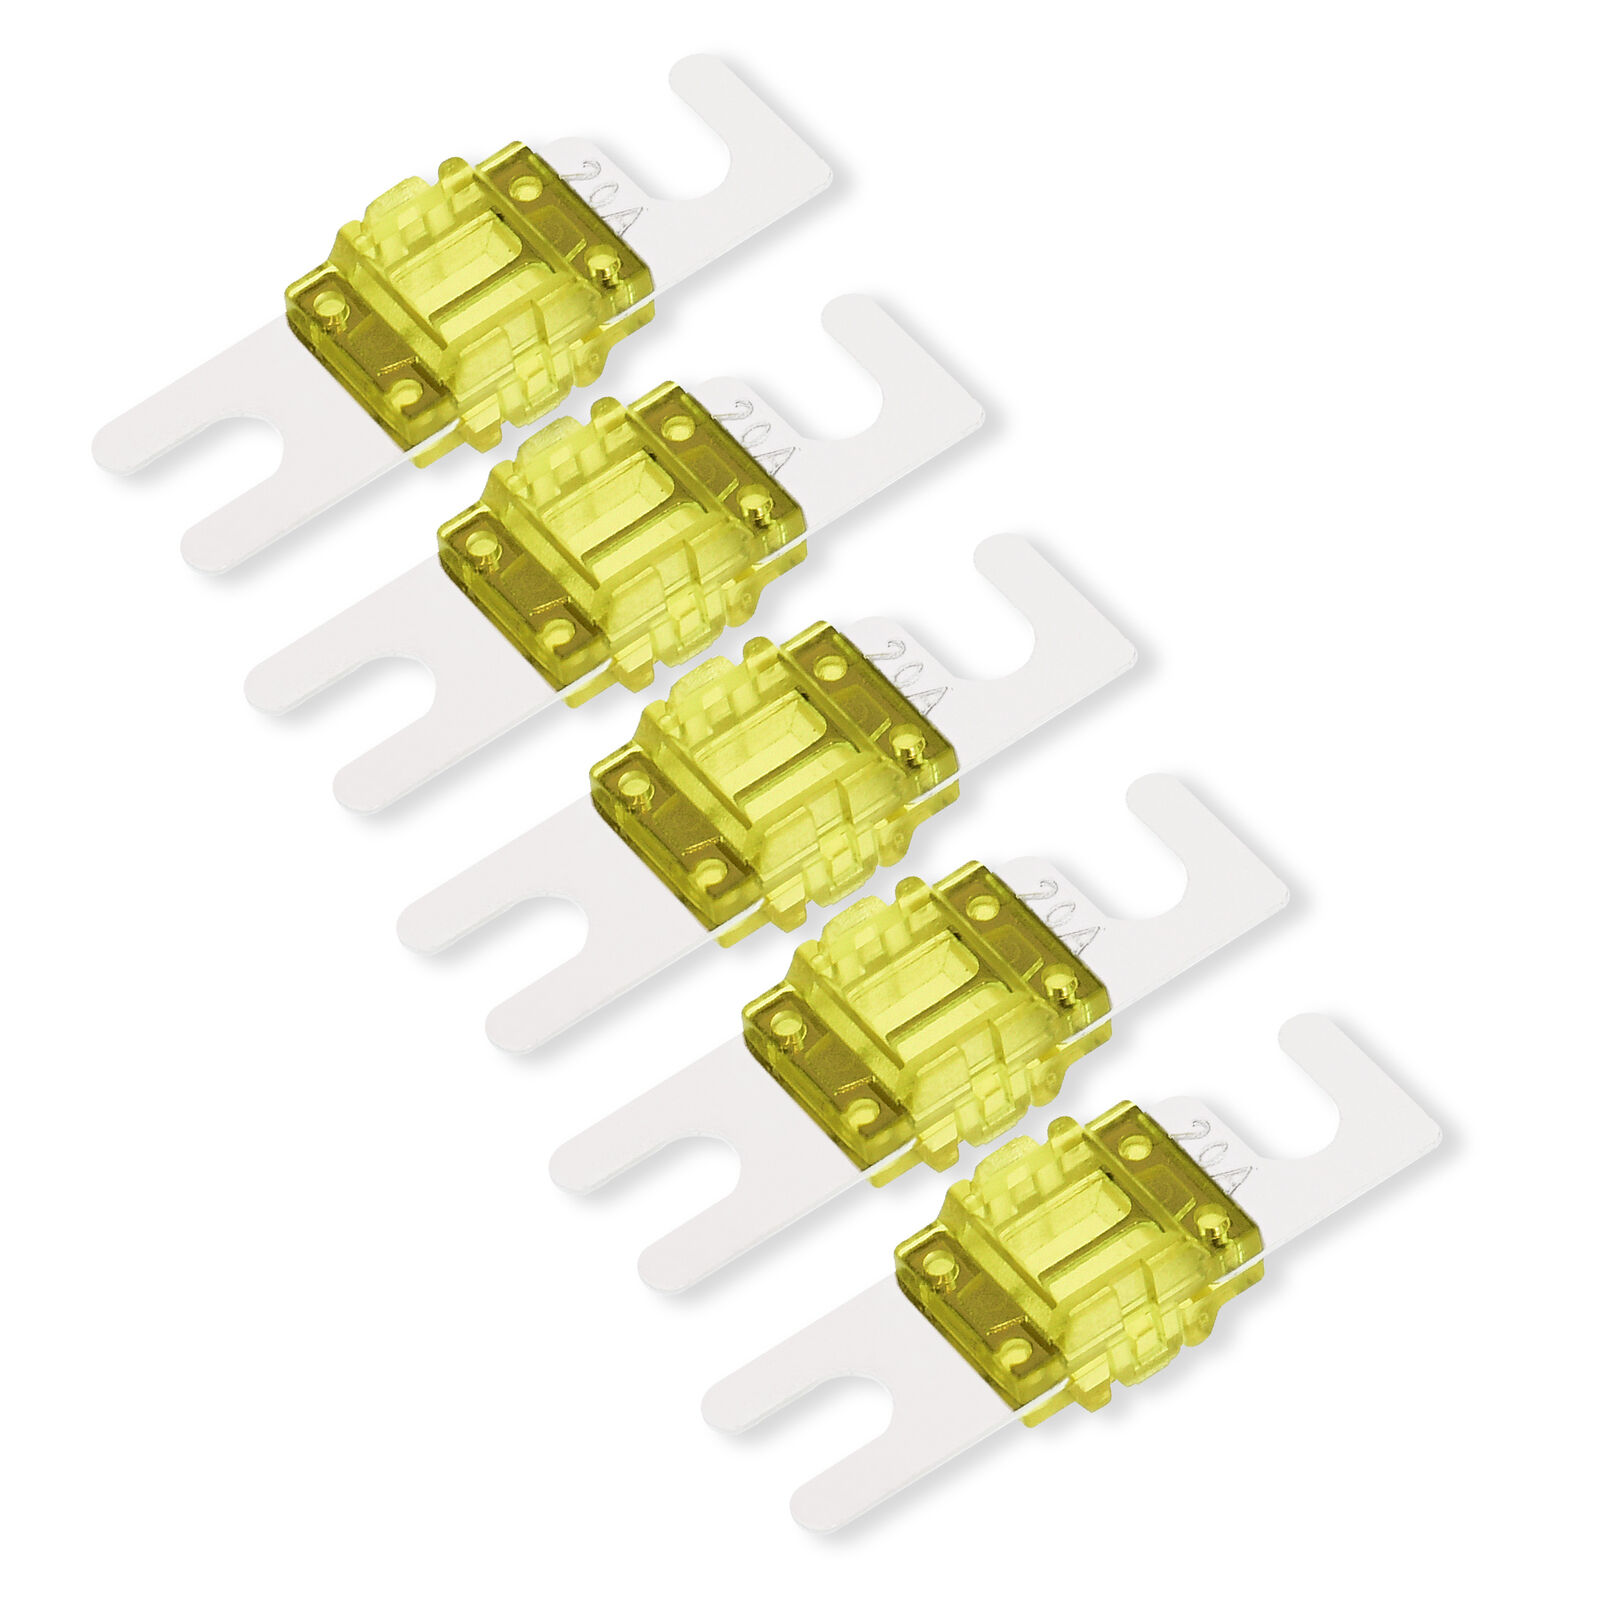 5pcs 30A Nickel Plated Car Audio Mini ANL Type Blade Fuse /& Fuse Holder